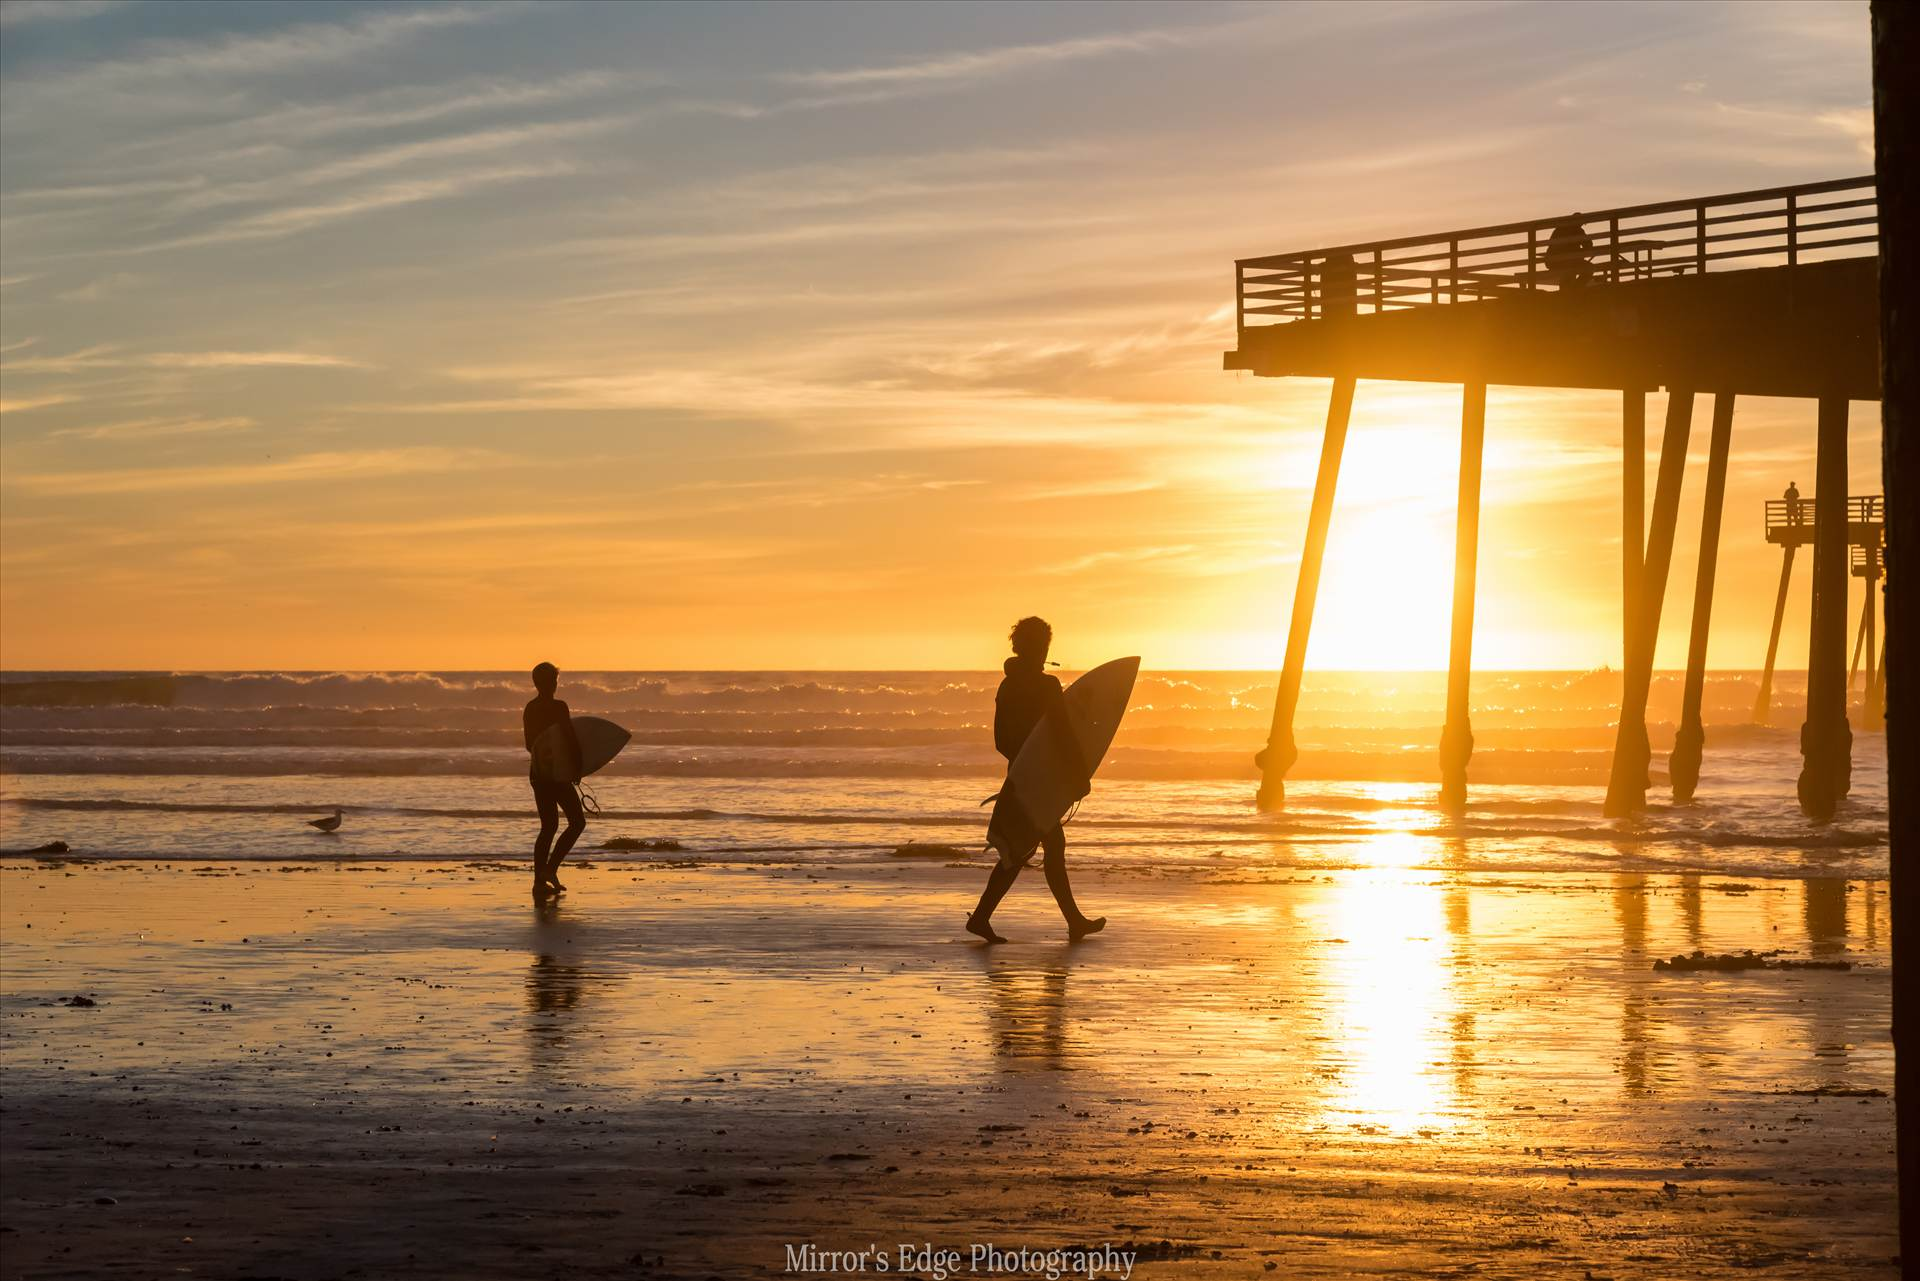 Surfers at Sunset3.jpg undefined by Sarah Williams